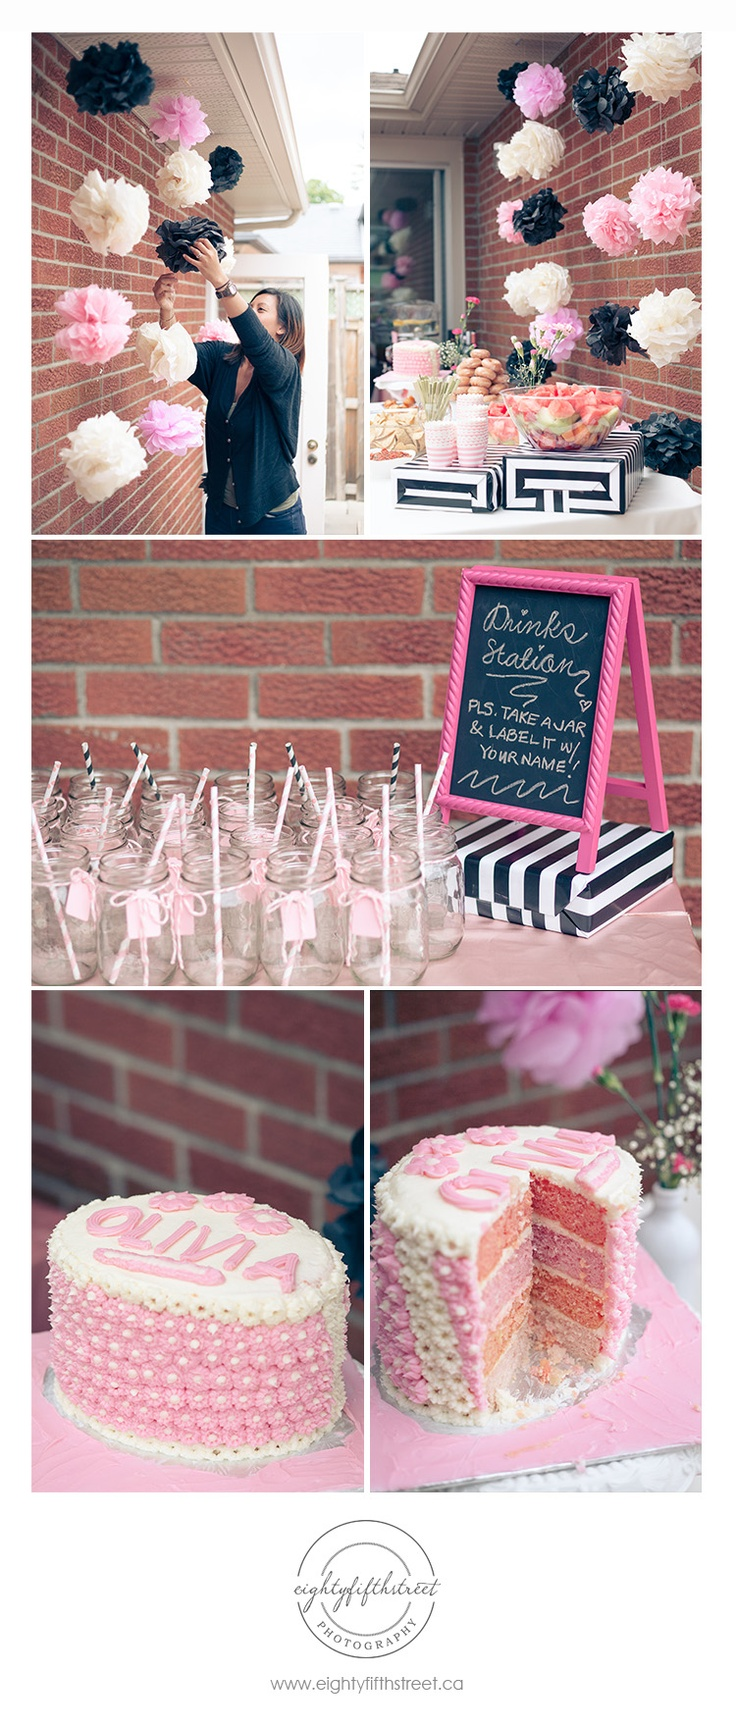 A pink, black and white themed bridal shower!...@Jessica Raley wedding shower!